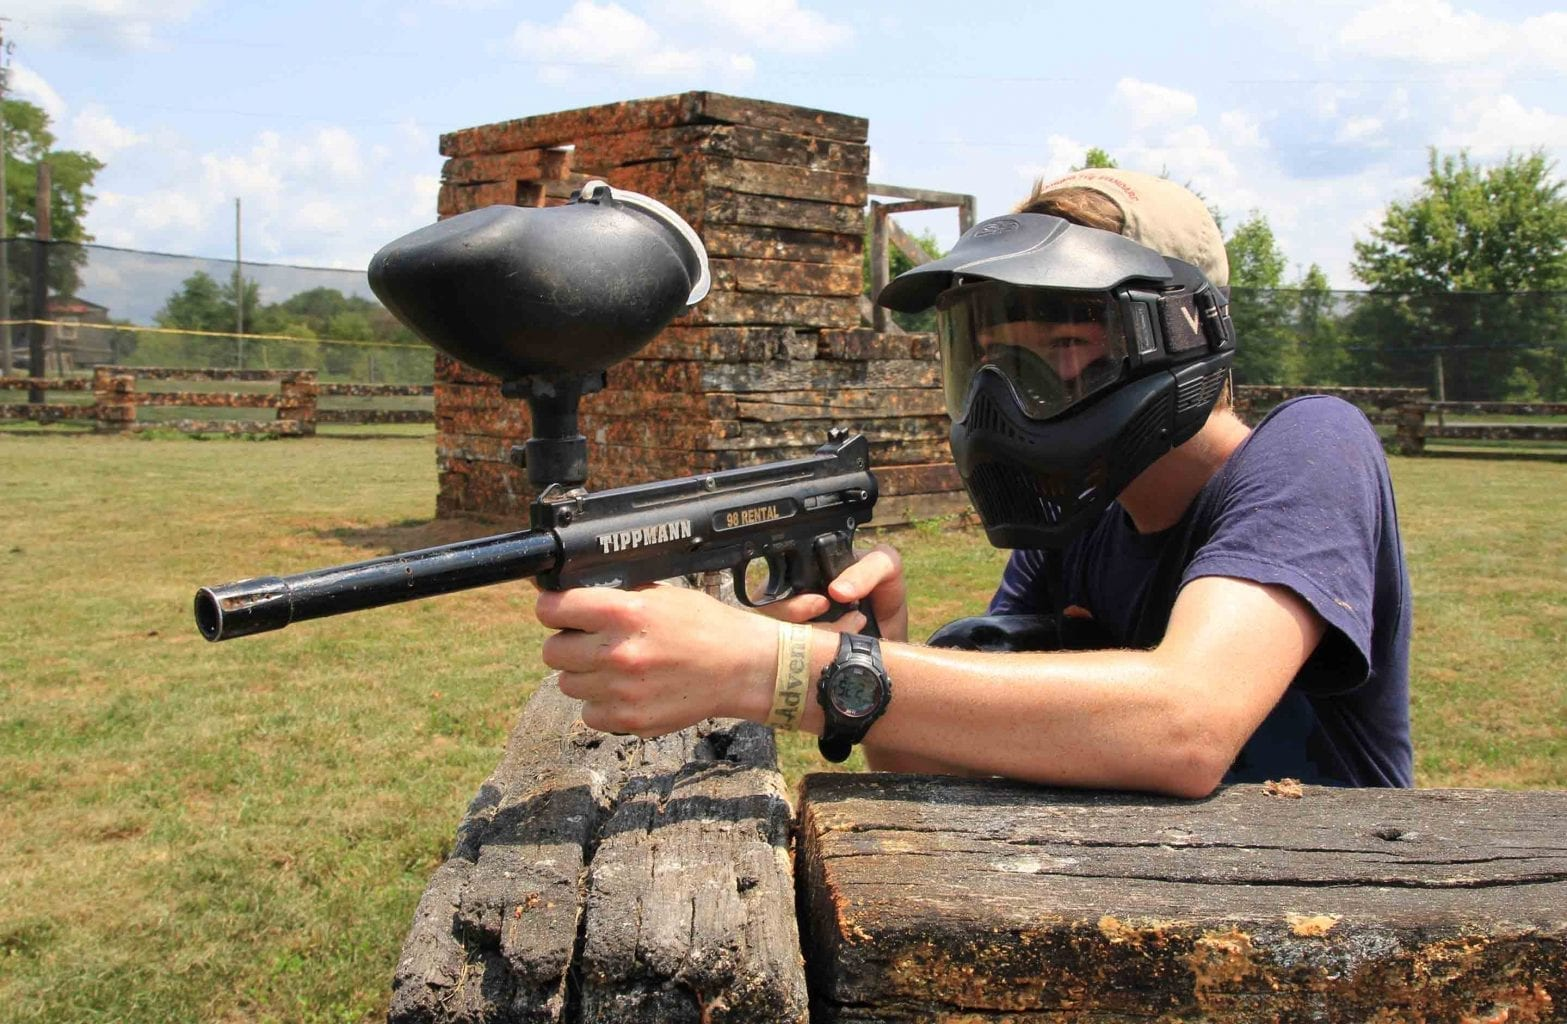 An older kid aims his paintball gun on the mountaintop course at ACE Adventure Resort.